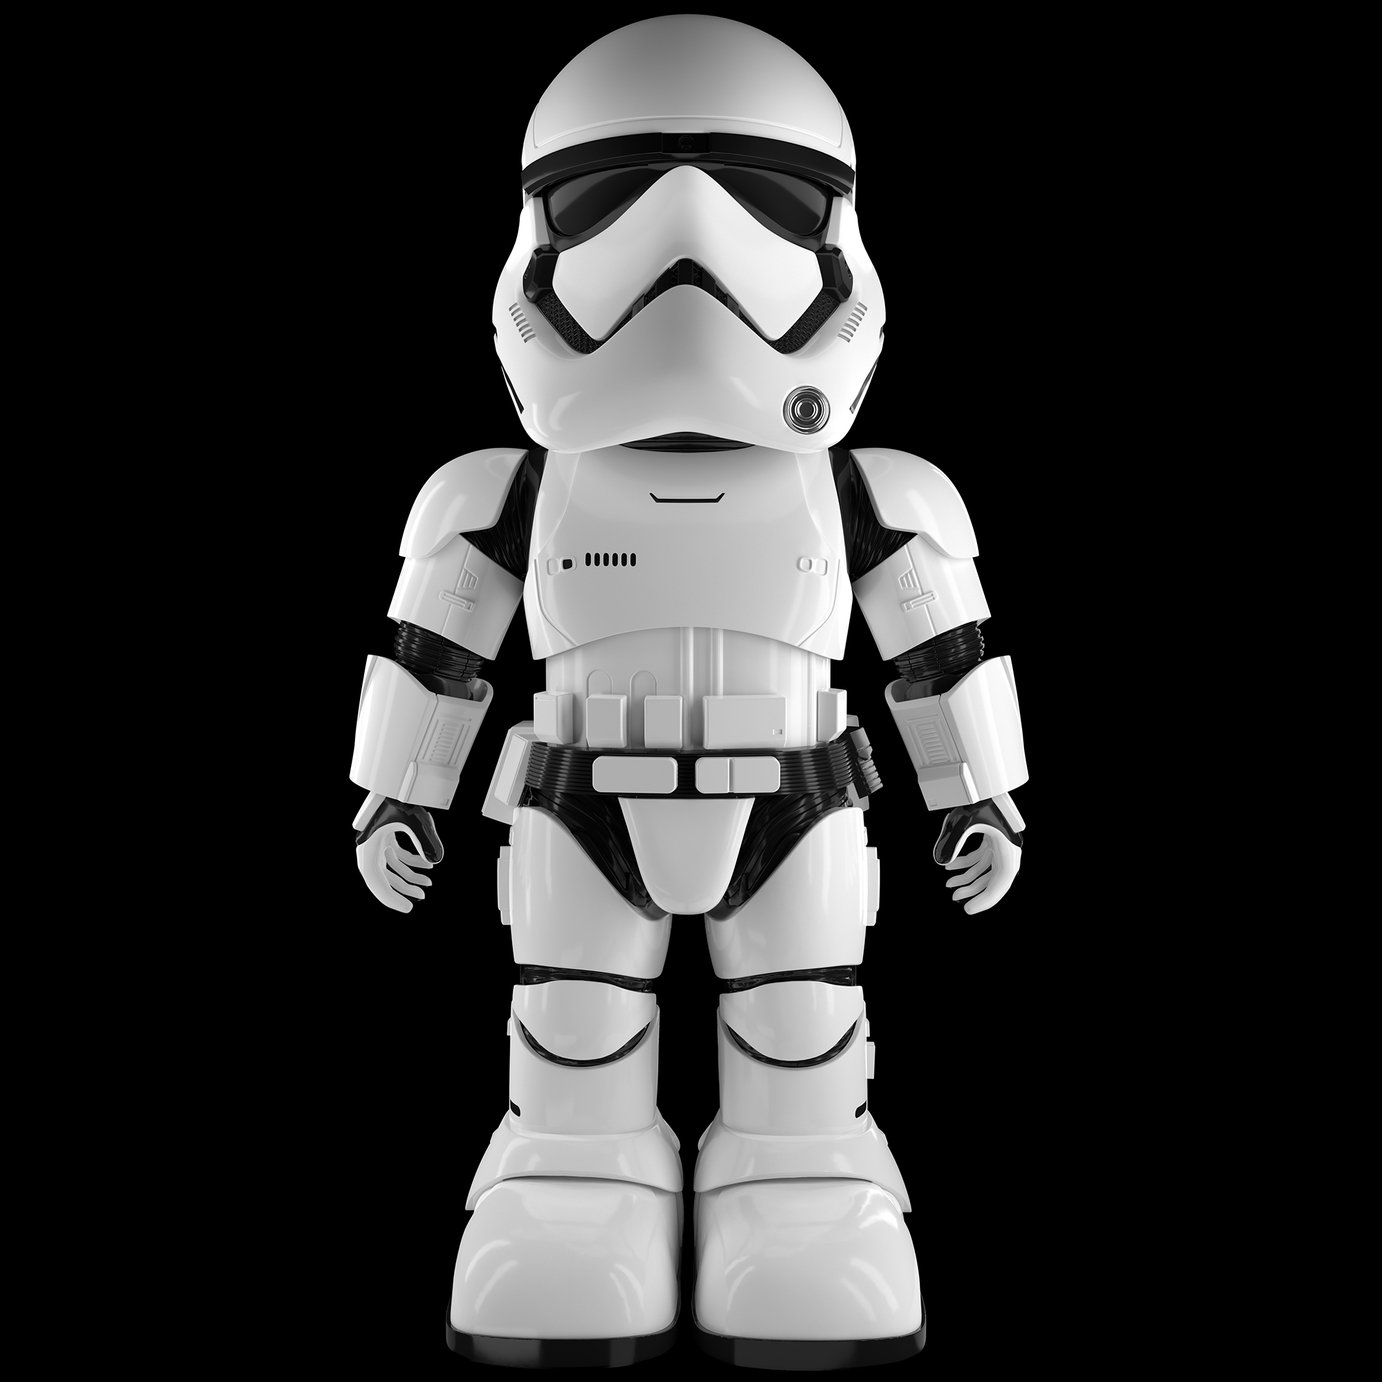 Ub Tech First Order Stormtrooper Robot